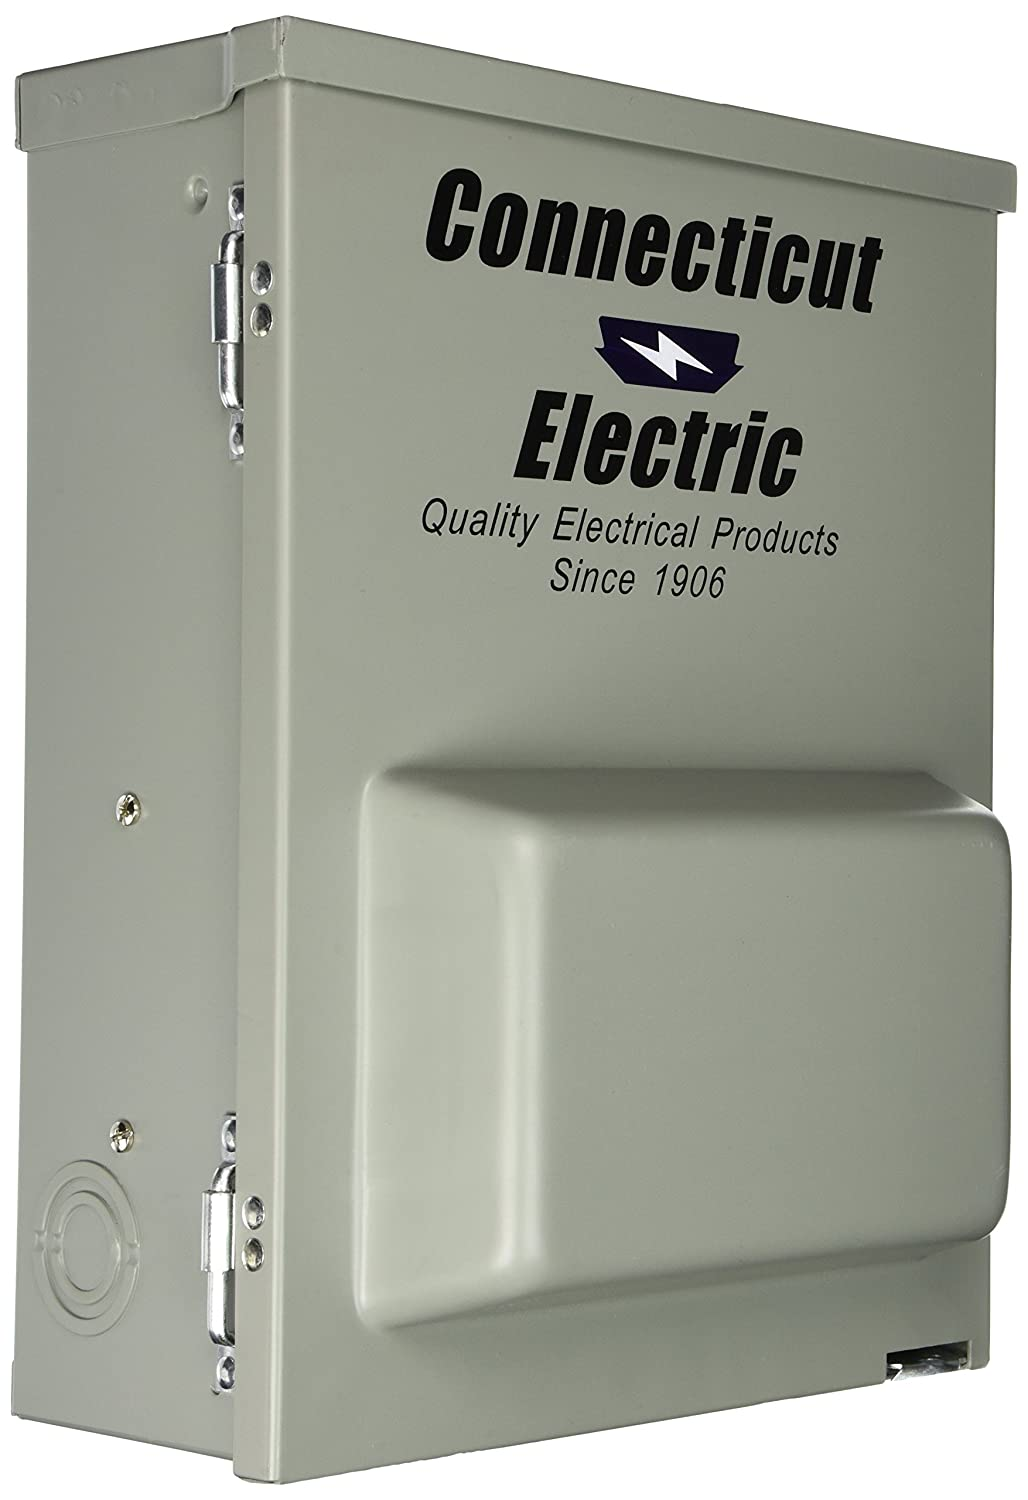 Connecticut Electric Cesmpsc75grhr 80 Amps 120240 Volt Circuit Rv Breaker Box Wiring Diagram Additionally 50 240 Protected Power Outlet Receptacles